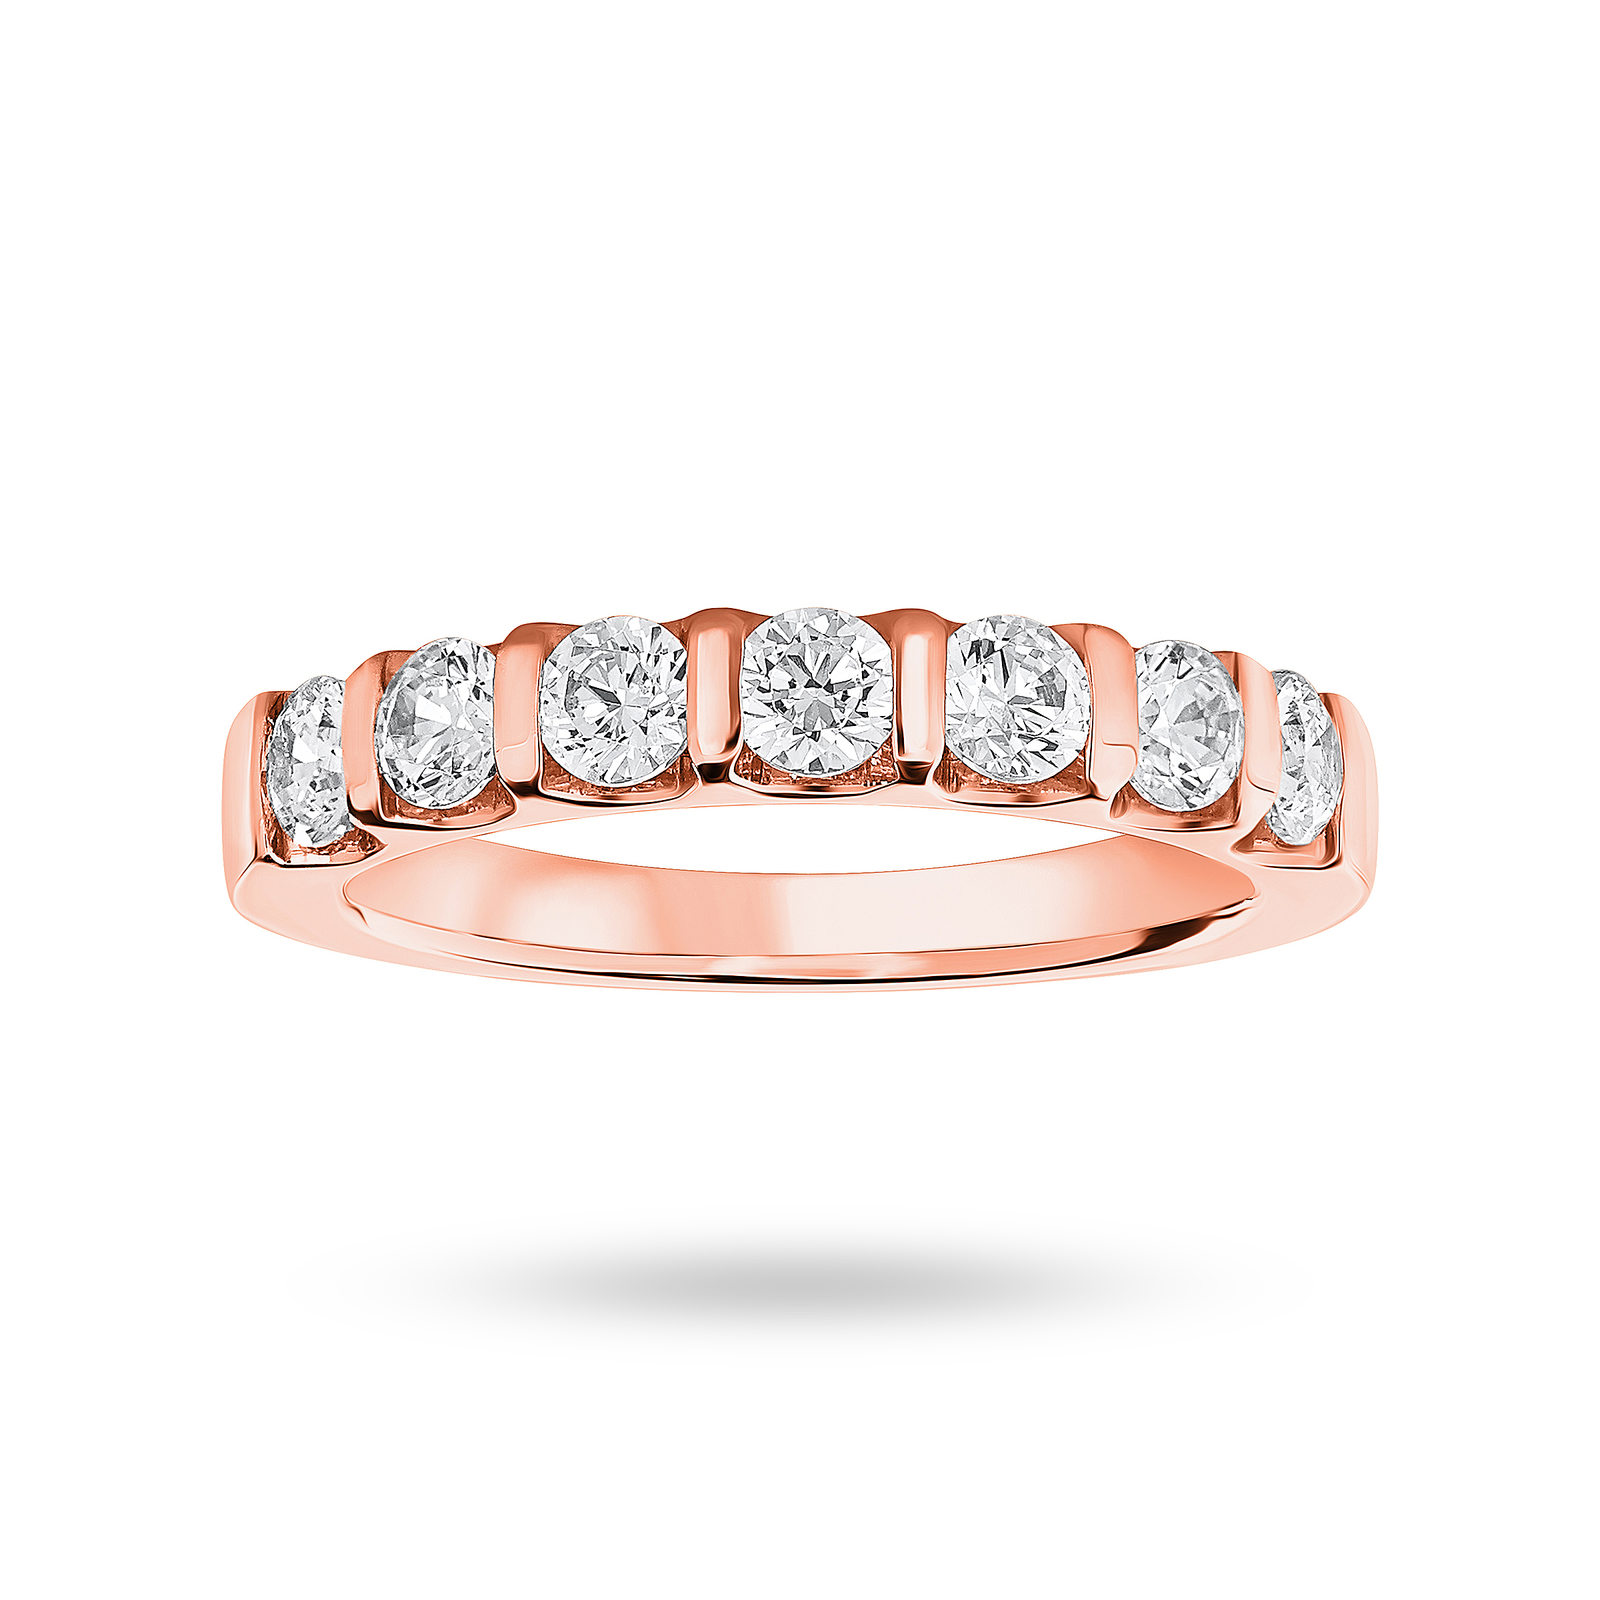 18 Carat Rose Gold 0.77 Carat Brilliant Cut Bar Half Eternity Ring